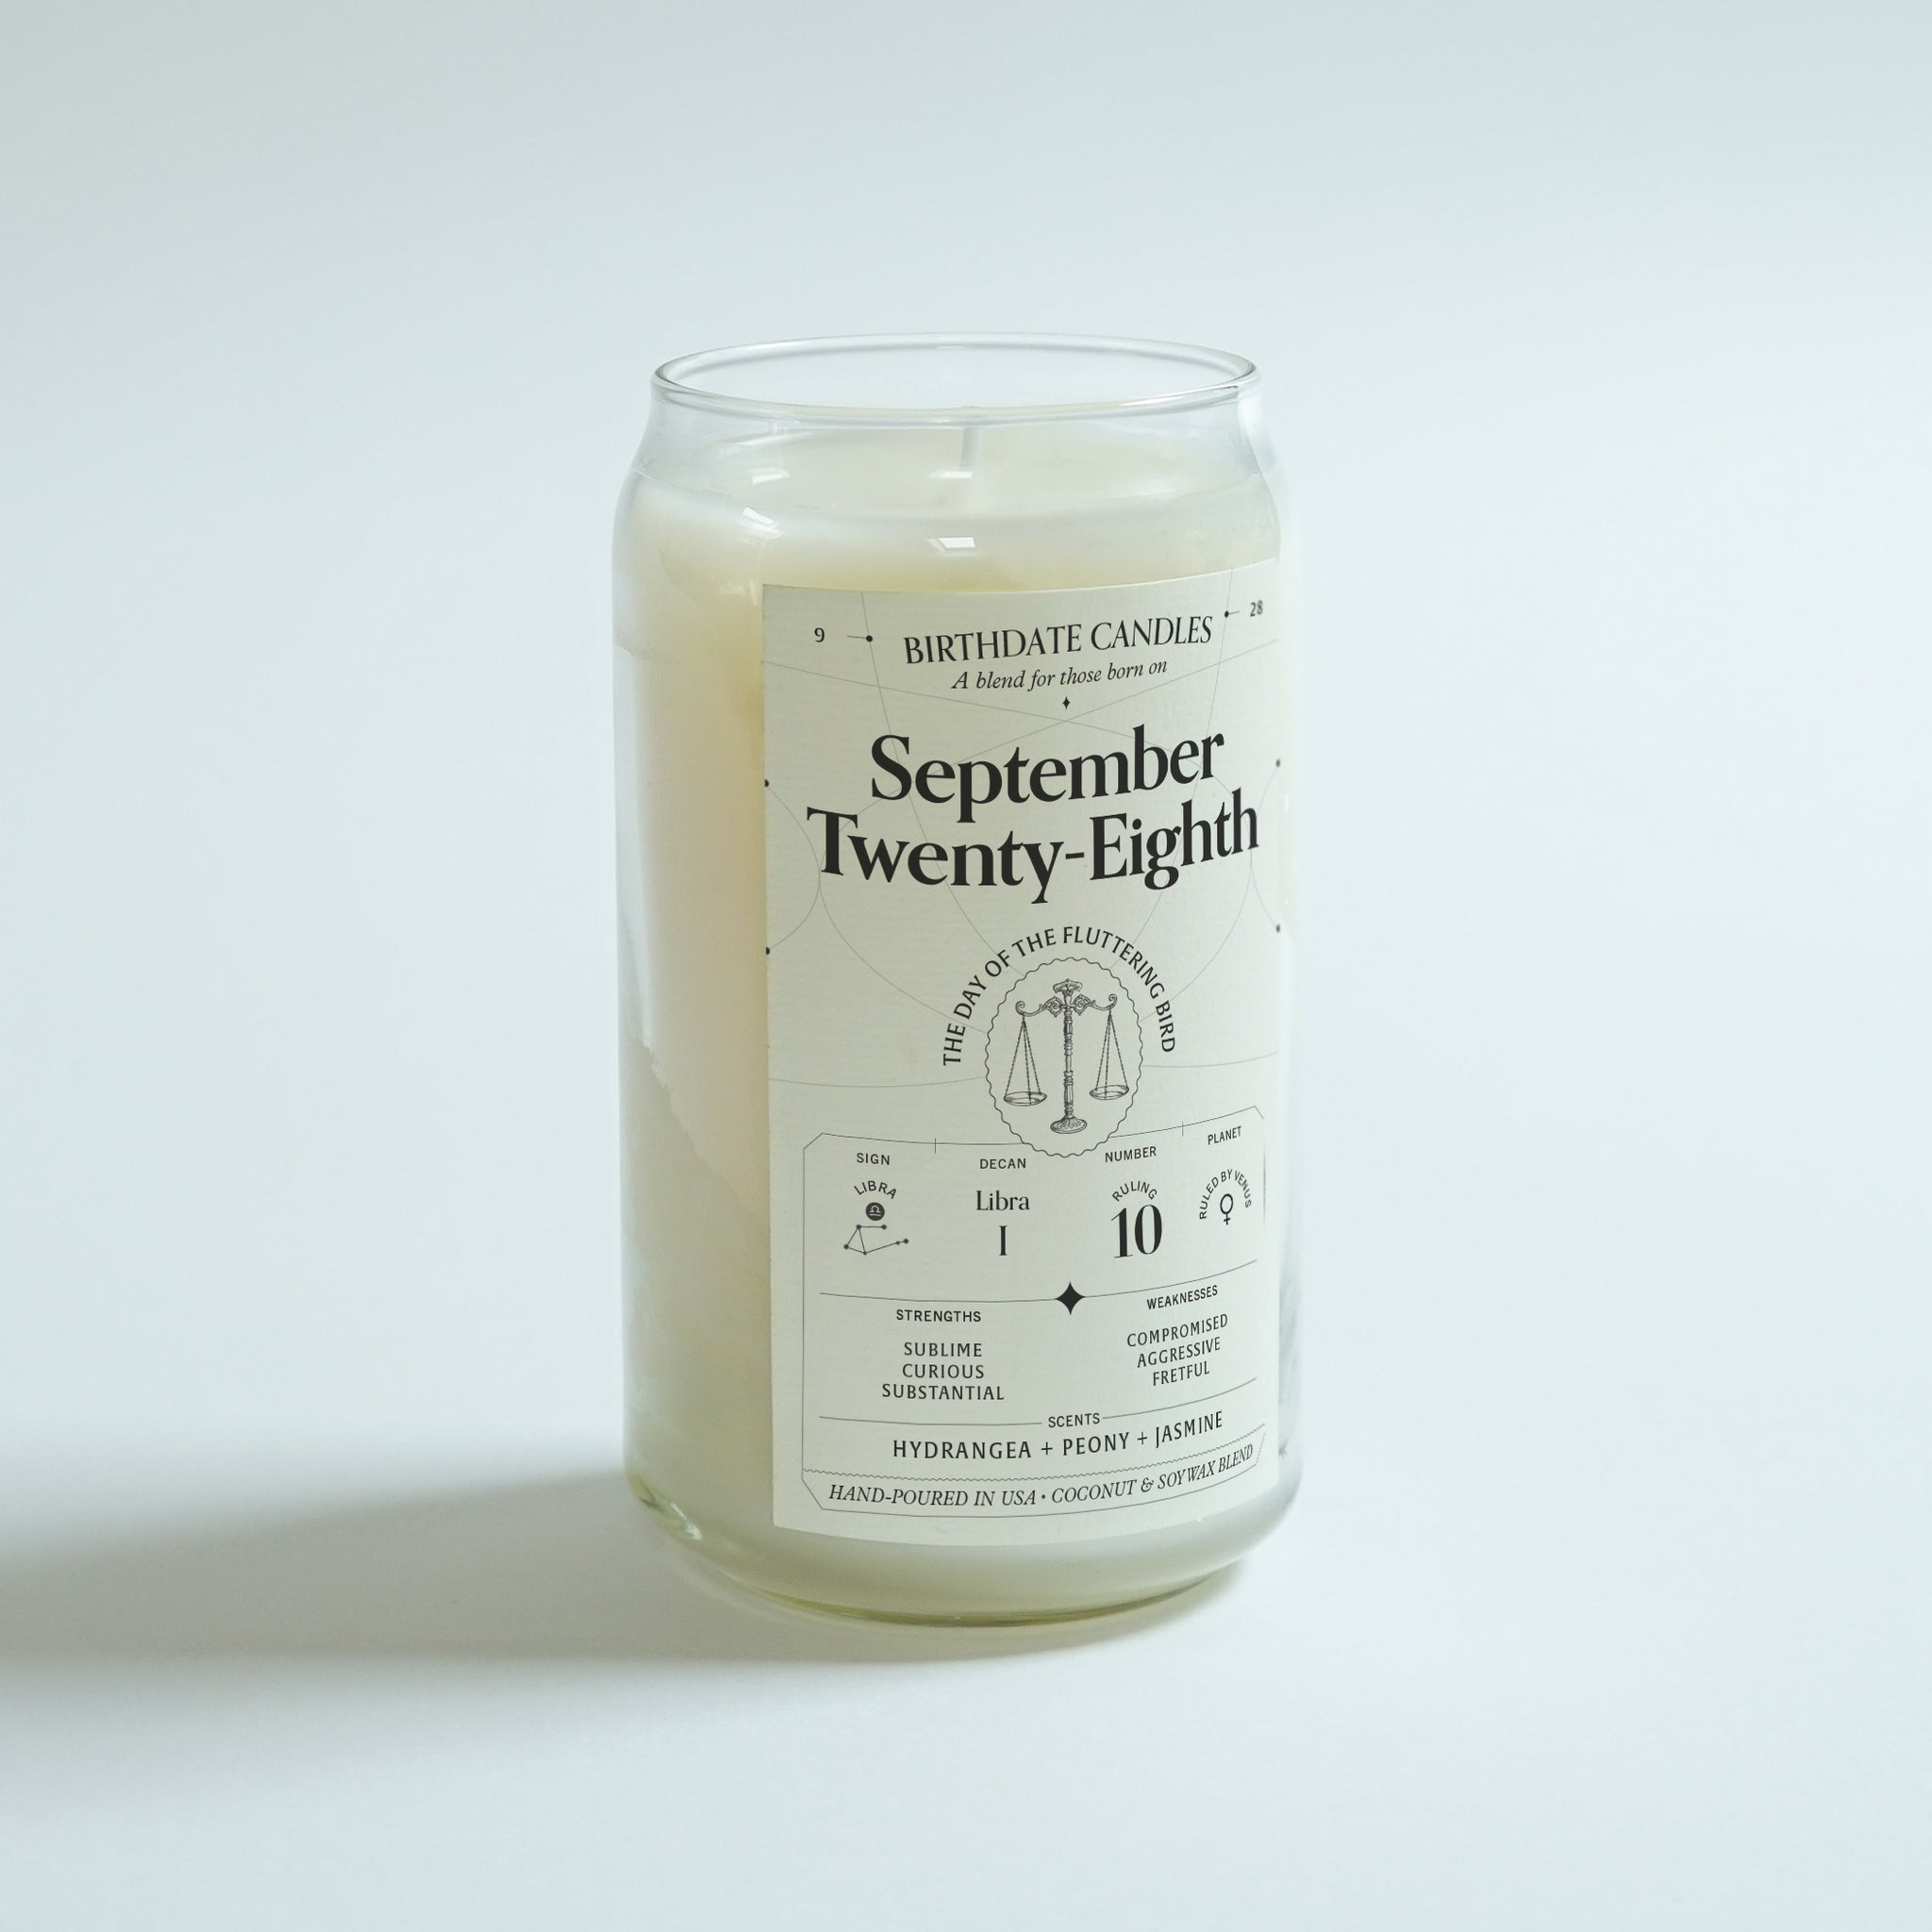 The September Twenty-Eighth Birthday Candle